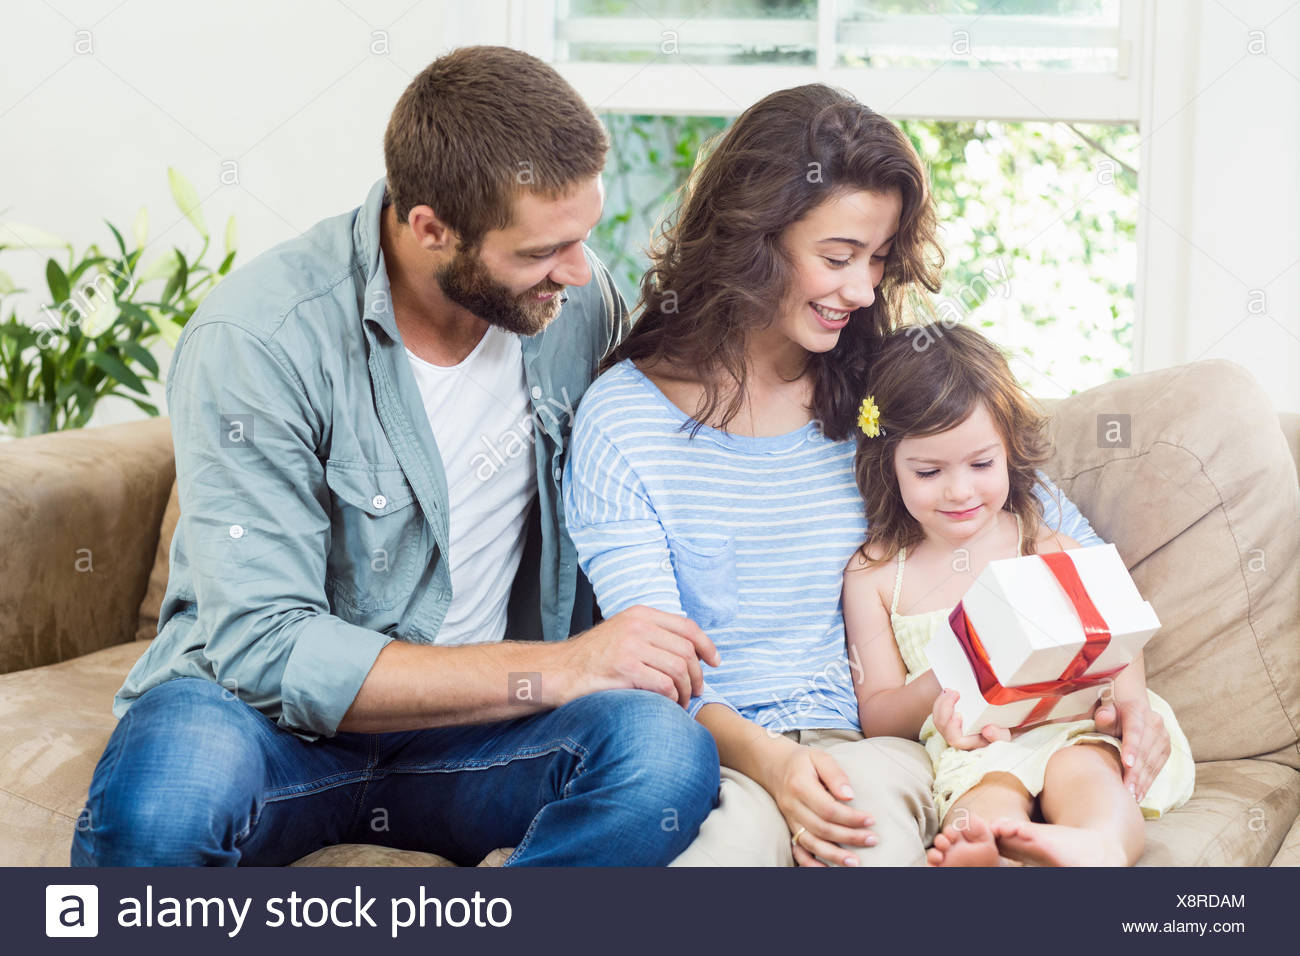 Daughter receiving surprise a gift from her parents